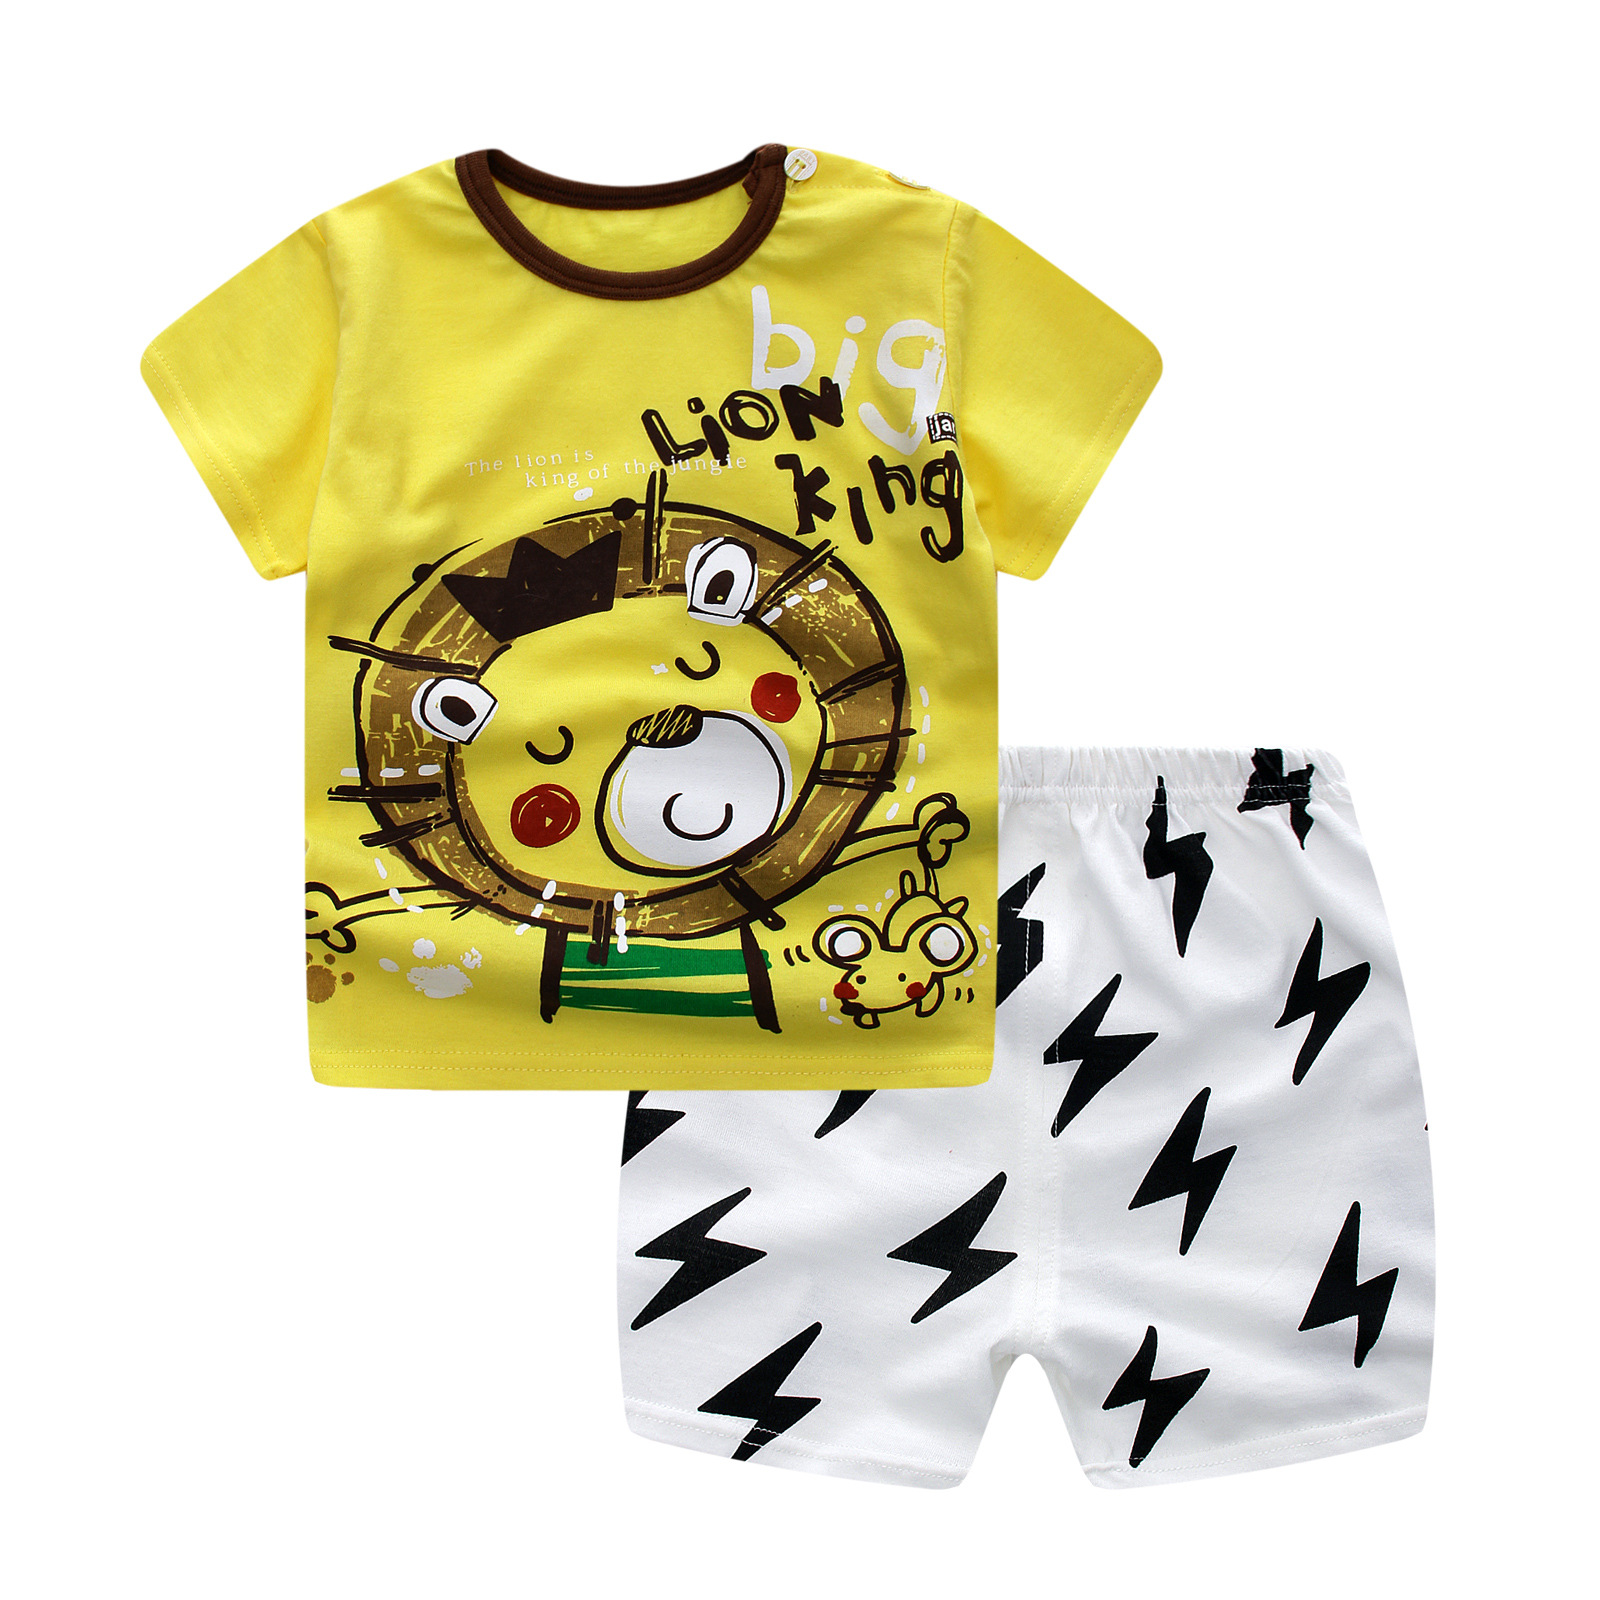 2pcs set Baby Boy Clothes Summer 2018 cotton Short sleeve Newborn Baby Boys Clothes Set Cartoon Baby Clothing Suit (Shirt+Pants) 2pcs baby kids boys clothes set t shirt tops long sleeve outfits pants set cotton casual cute autumn clothing baby boy